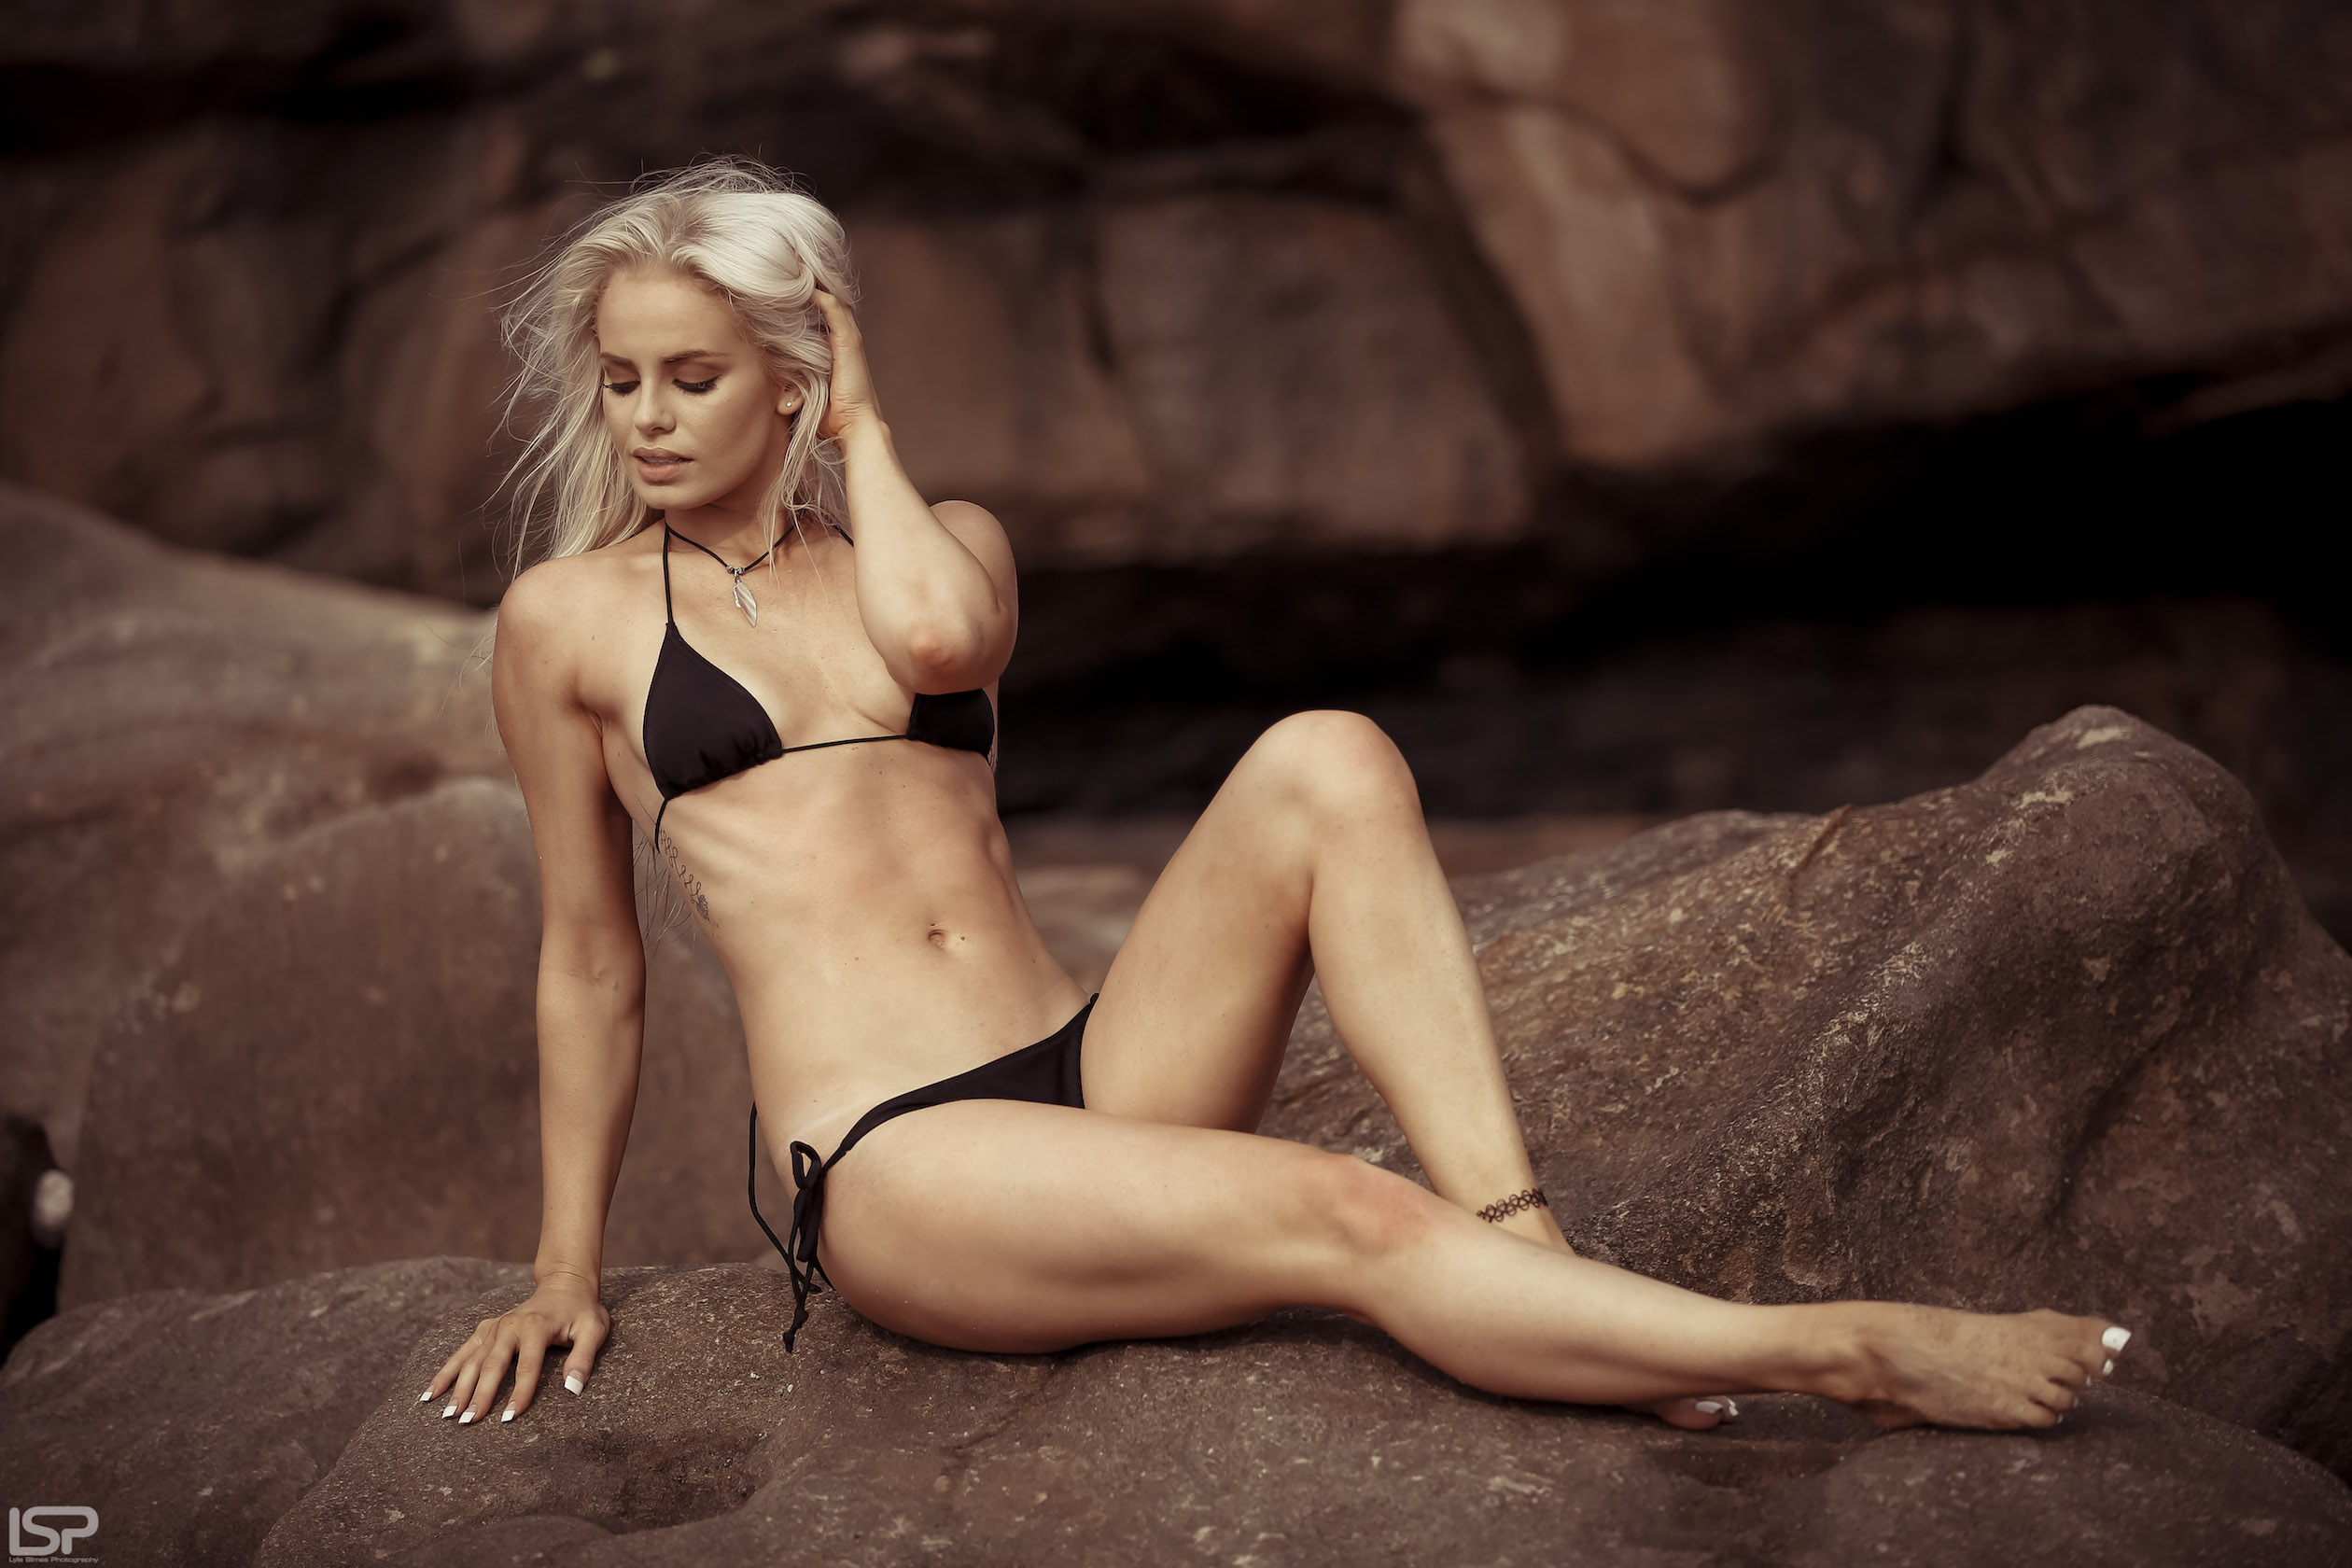 Our SA Girls feature with Amber Elizabeth